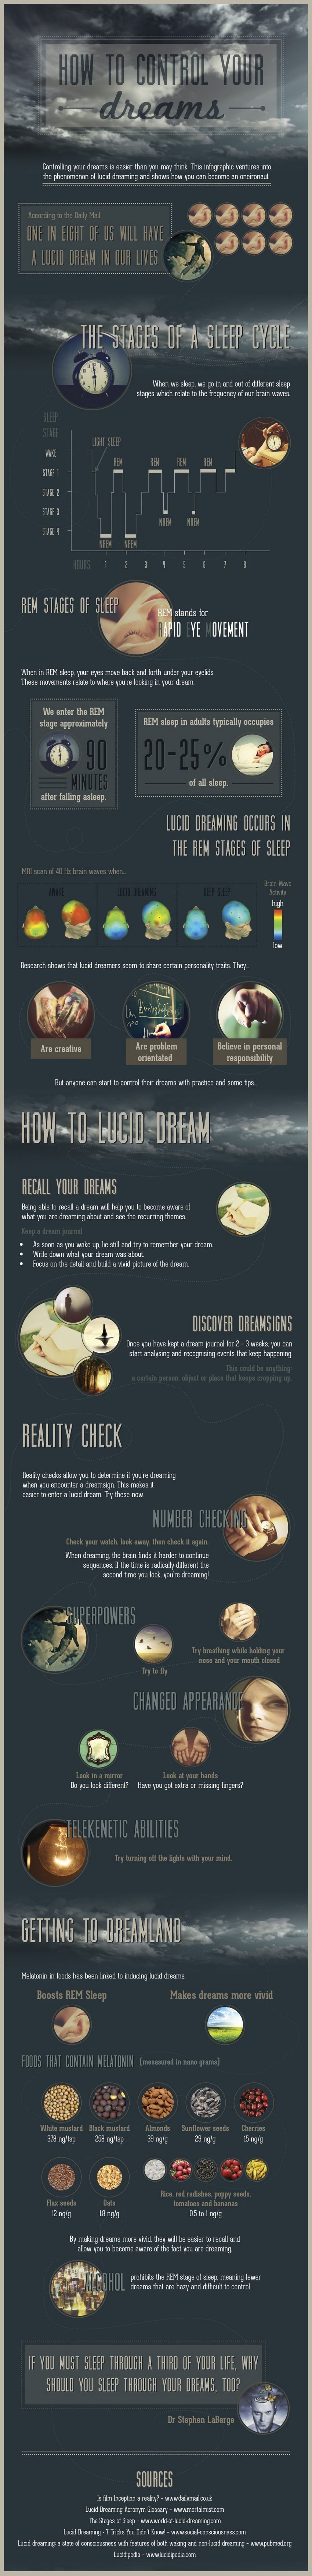 how-to-control-your-dreams-lucid-dreaming